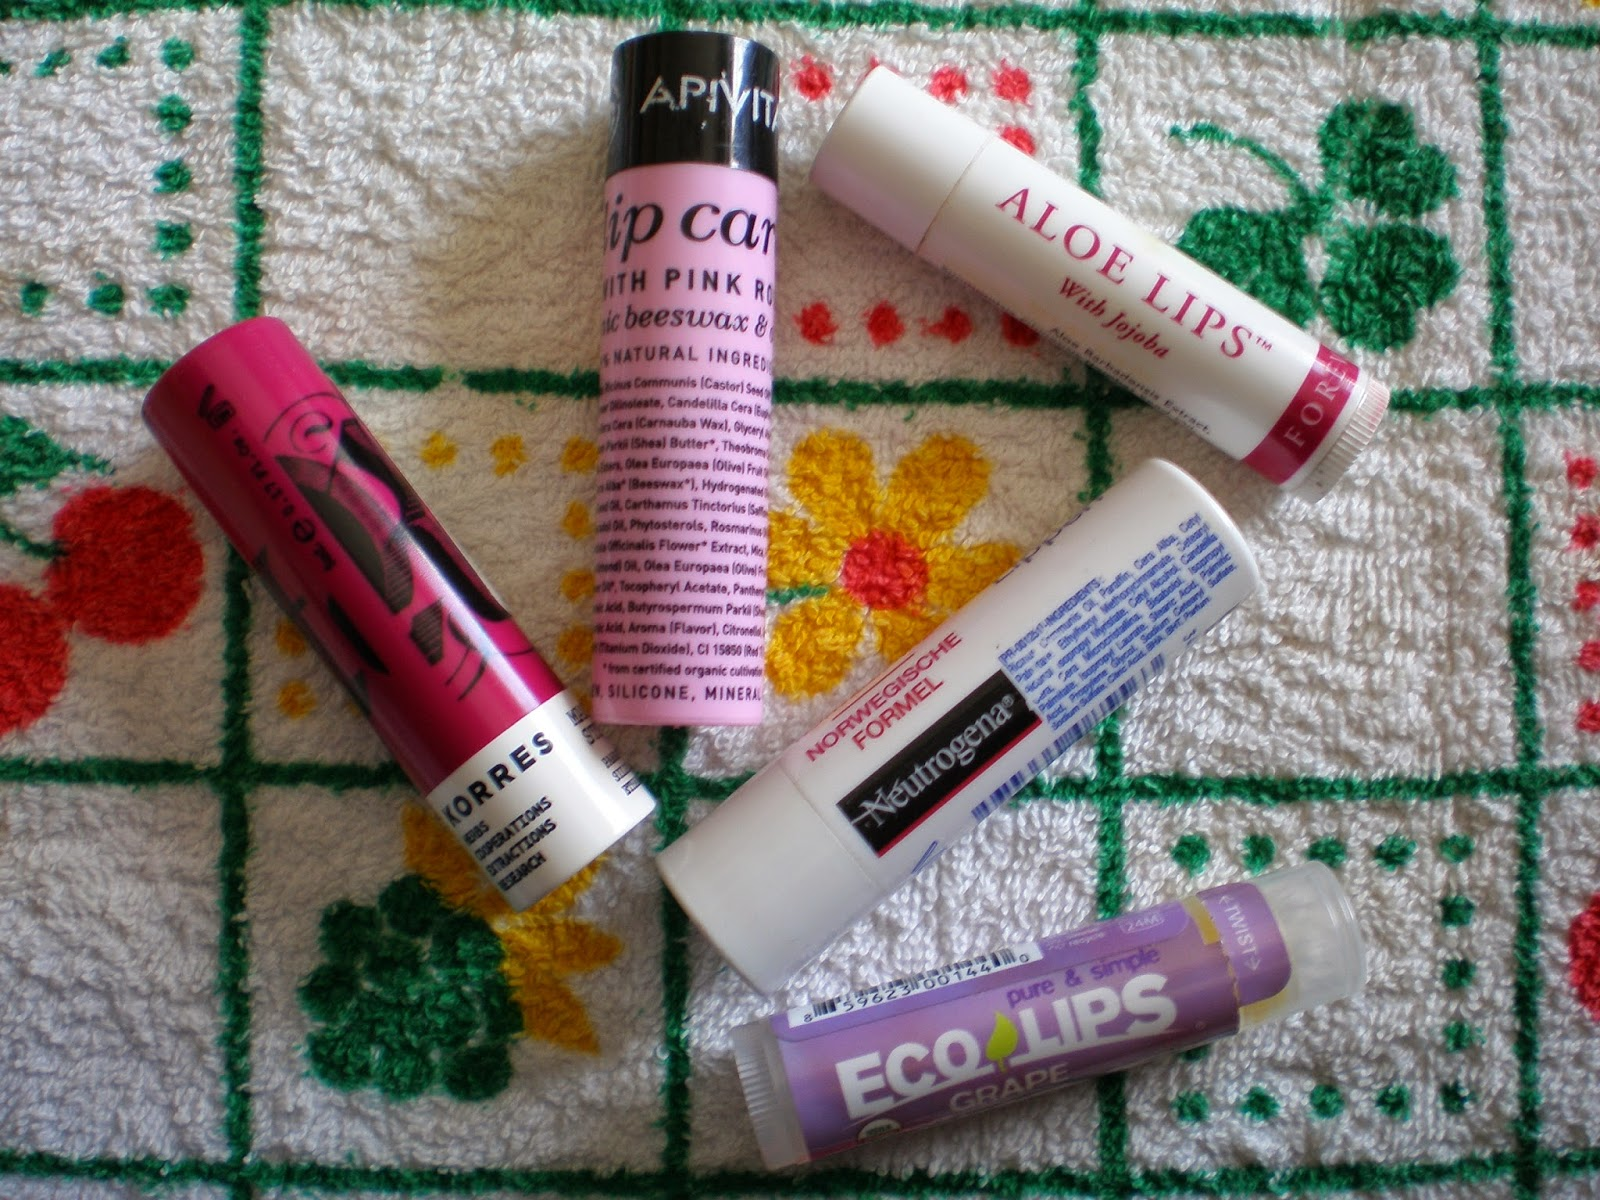 Apivita lip care with pink rose, Korres lip butter stick SPF15 in Purple, Eco Lips, Neutrogena, Forever Living Aloe Lips